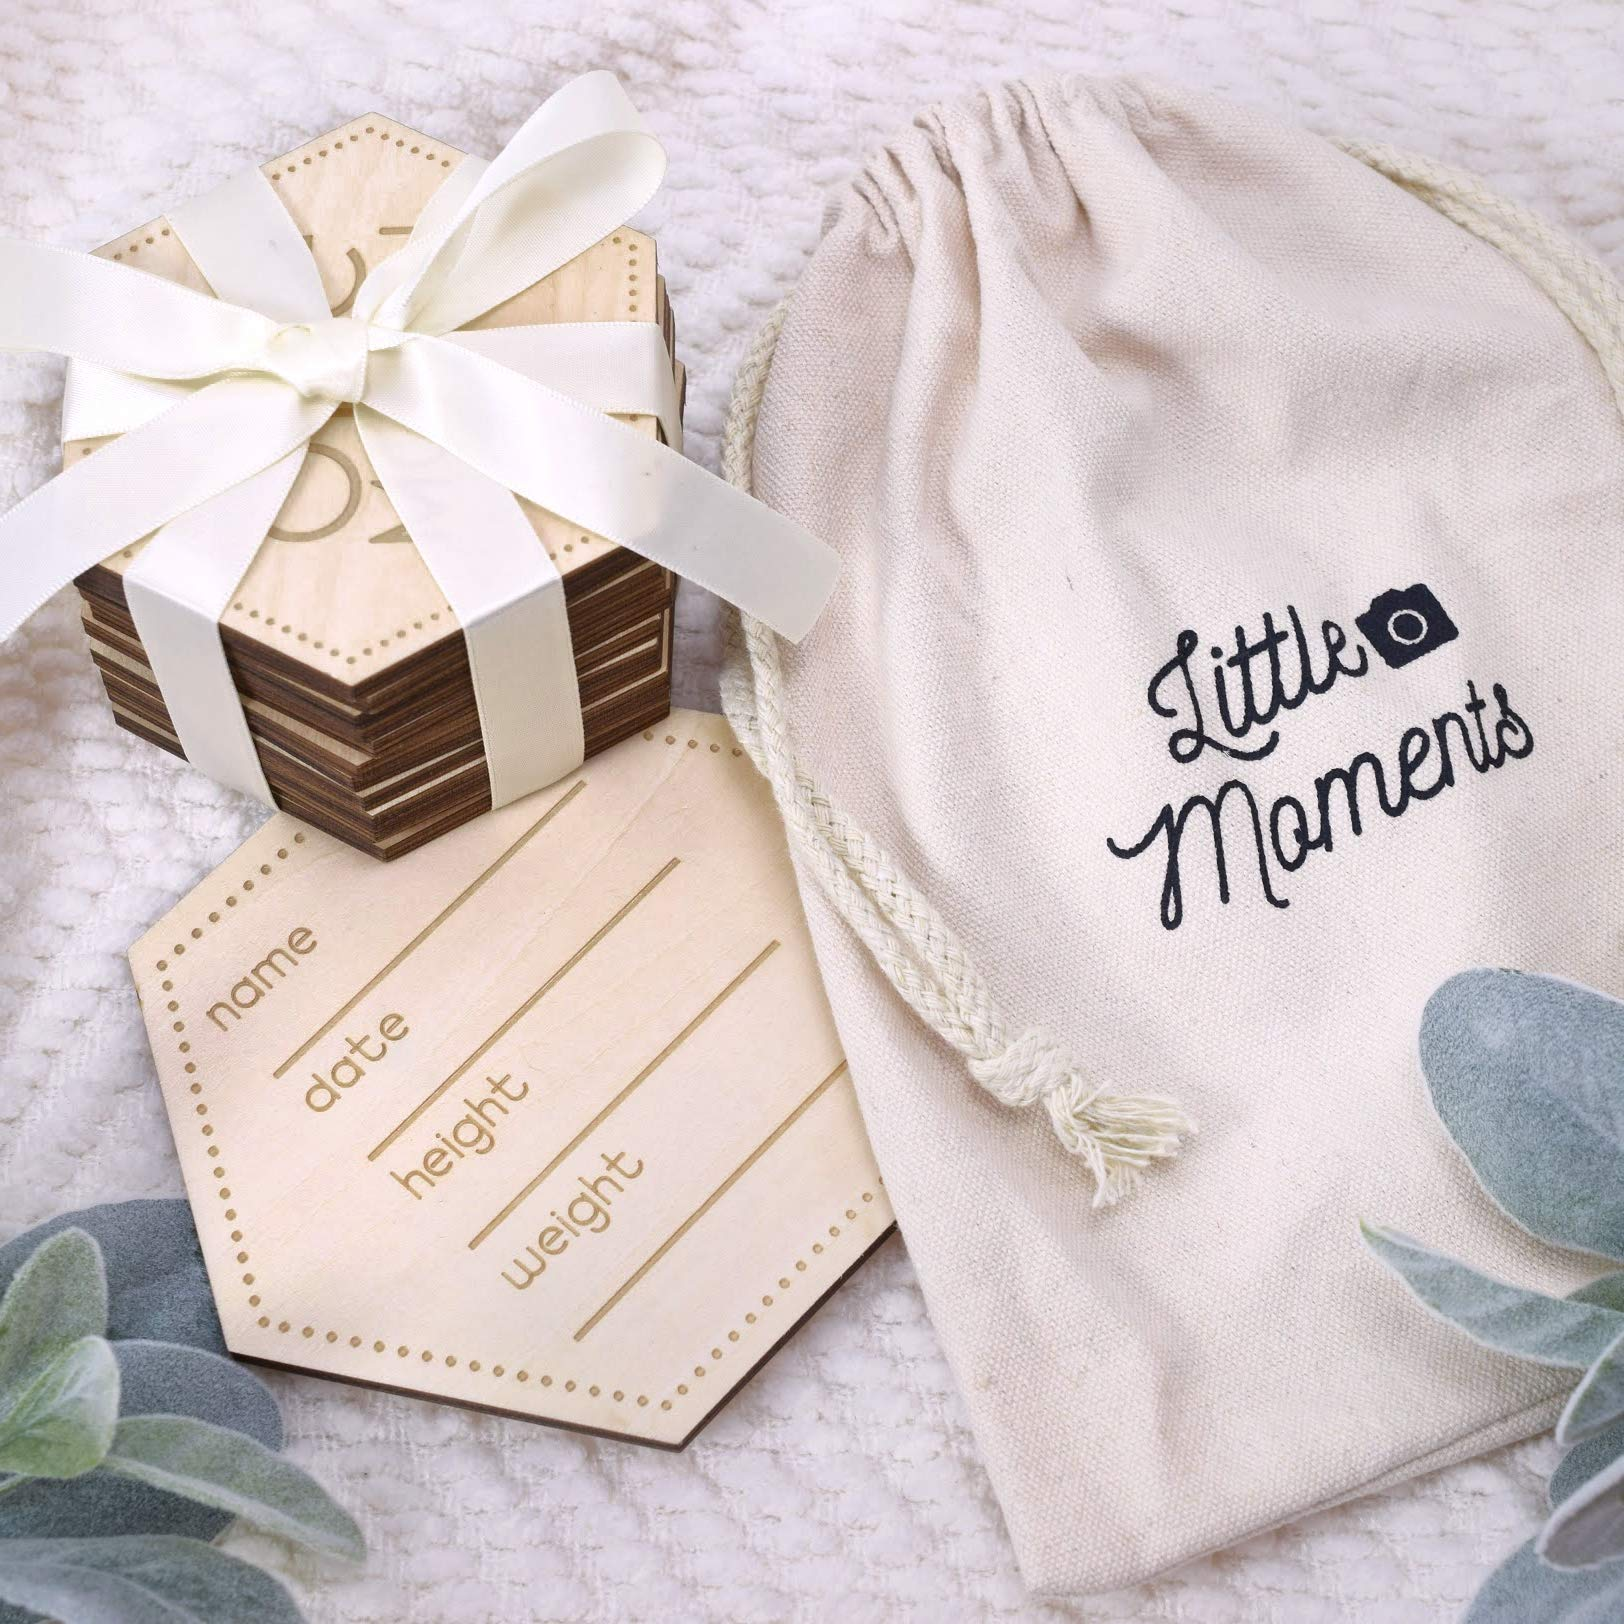 Super Cute, Unisex Wooden Baby Monthly Cards. Reversible, Laser Engraved Blocks Set of 24 Sayings Plus a Customizable Birth Card. Natural Wood Disc Photo Props for Boy or Girl in Keepsake Gift Bag.